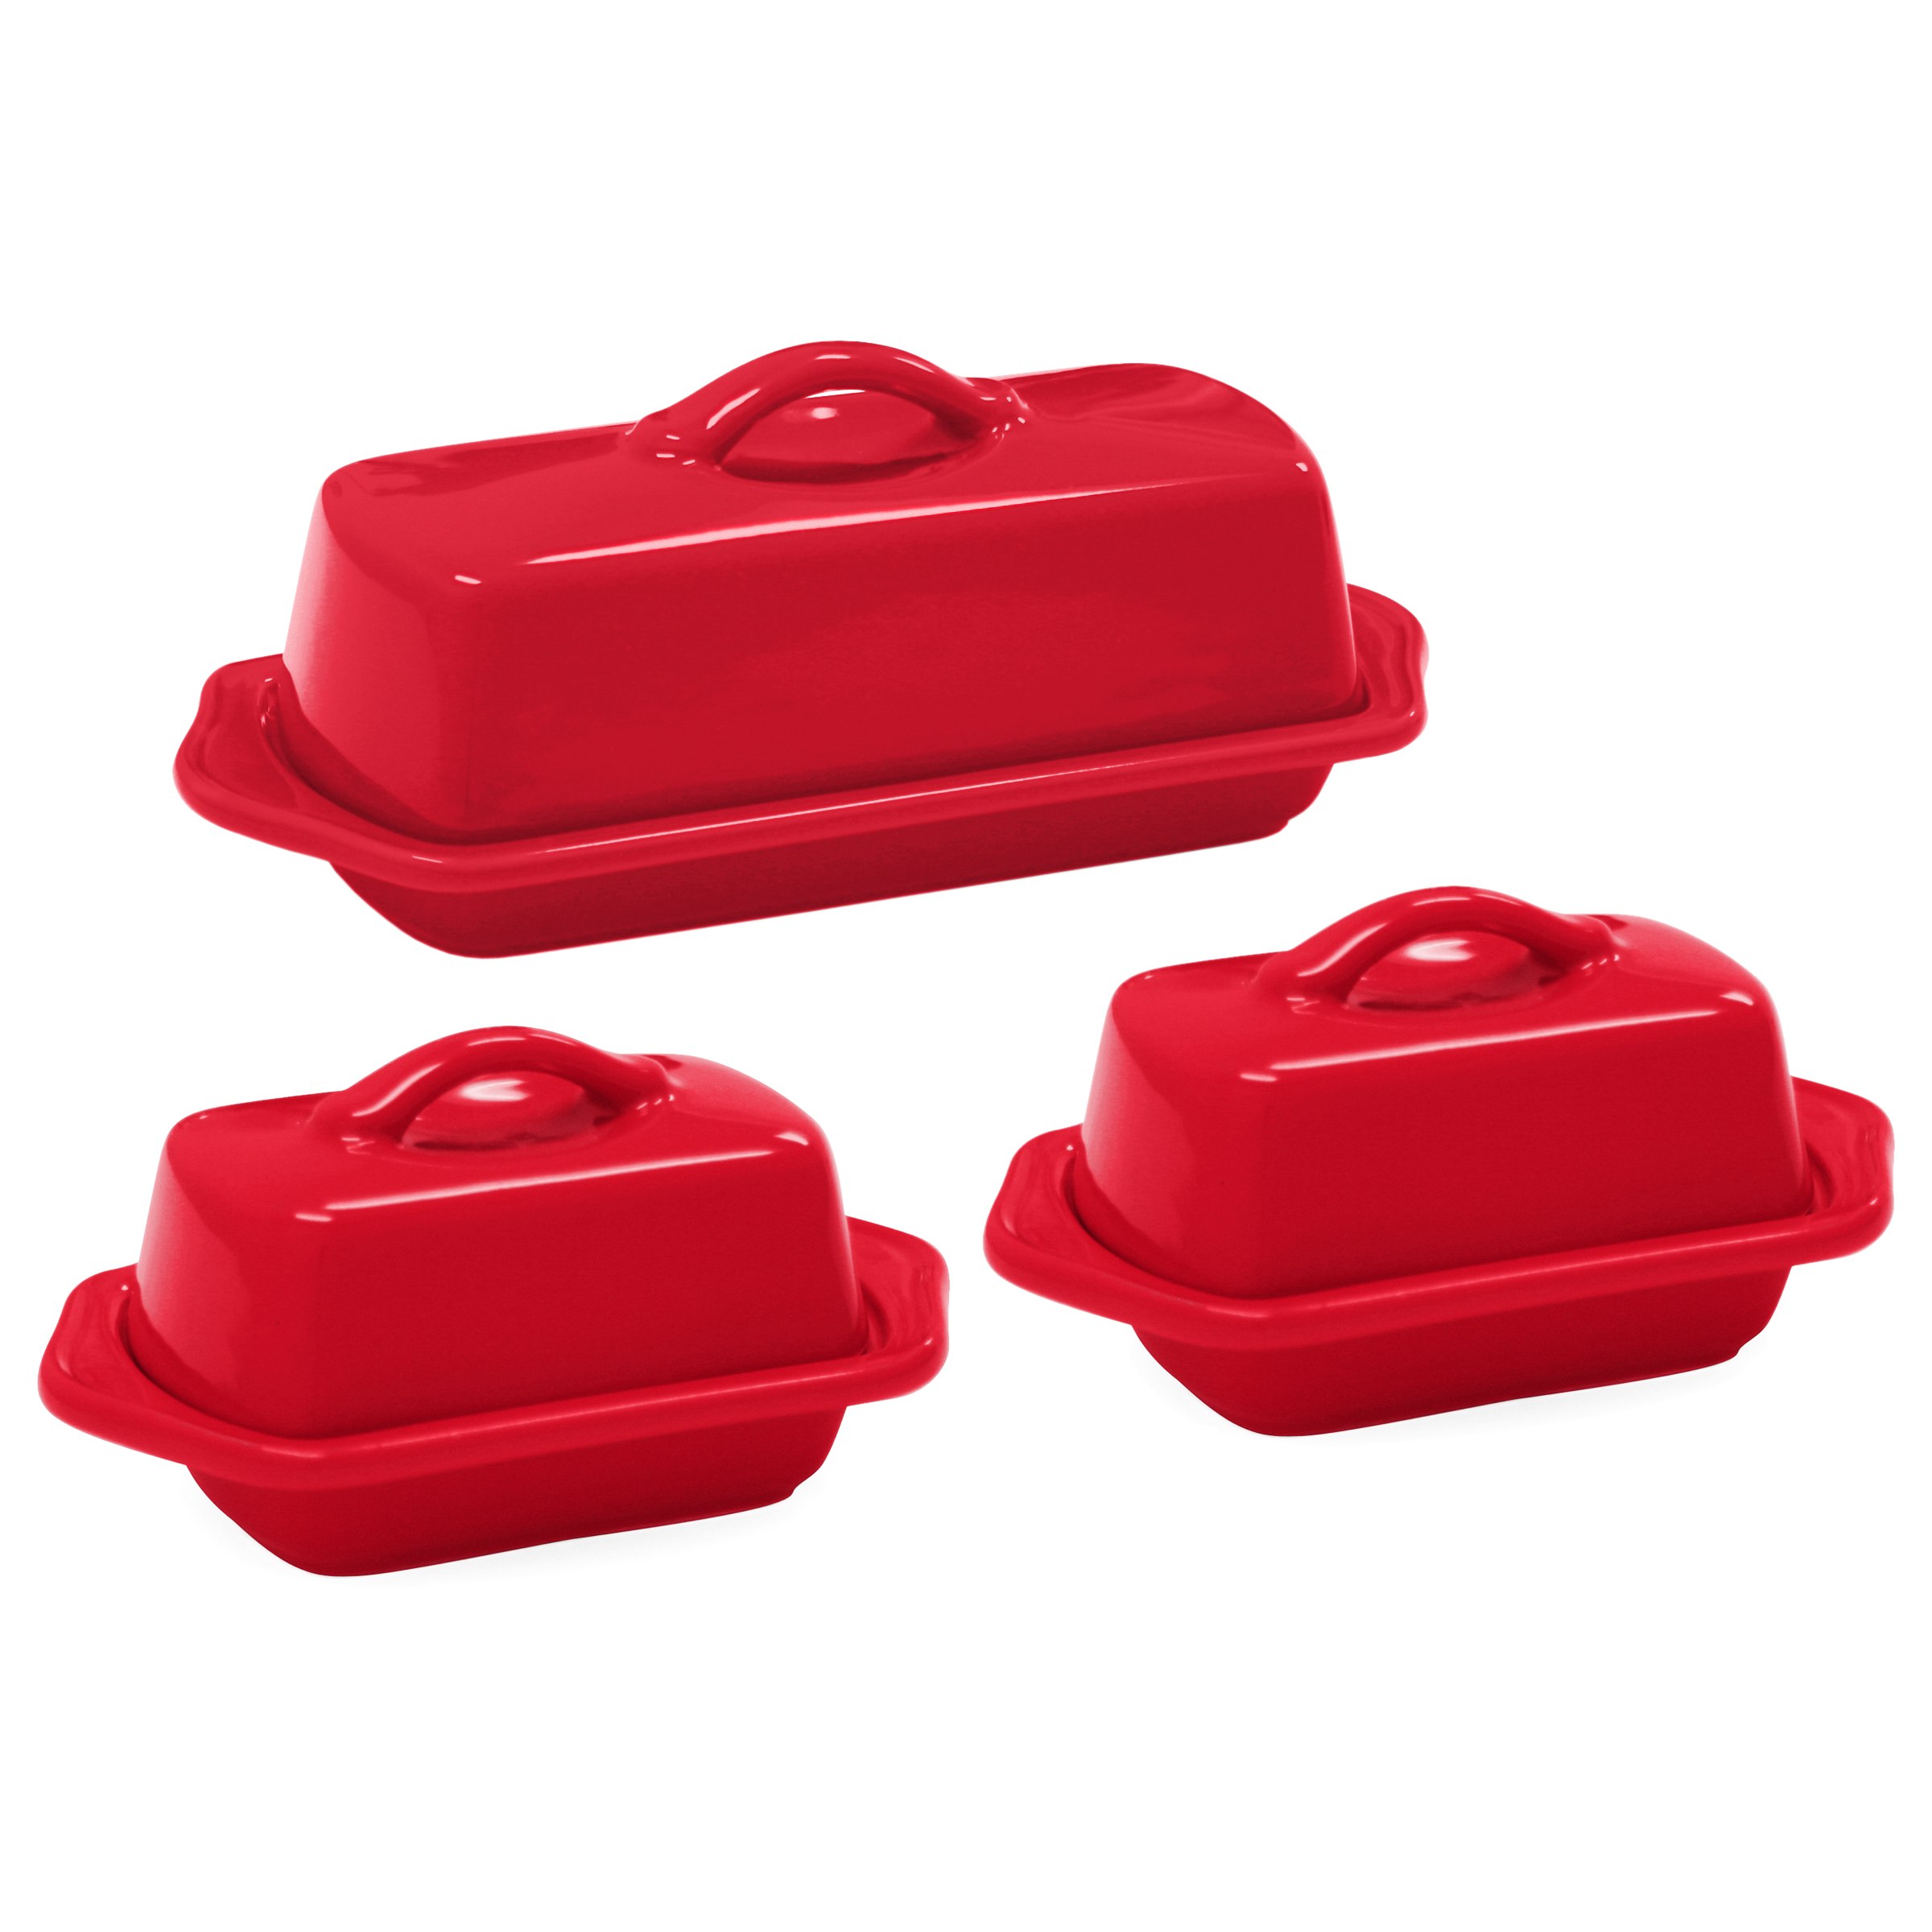 Chantal True Red Stoneware 3 Piece Traditional and Mini Butter Dish Set